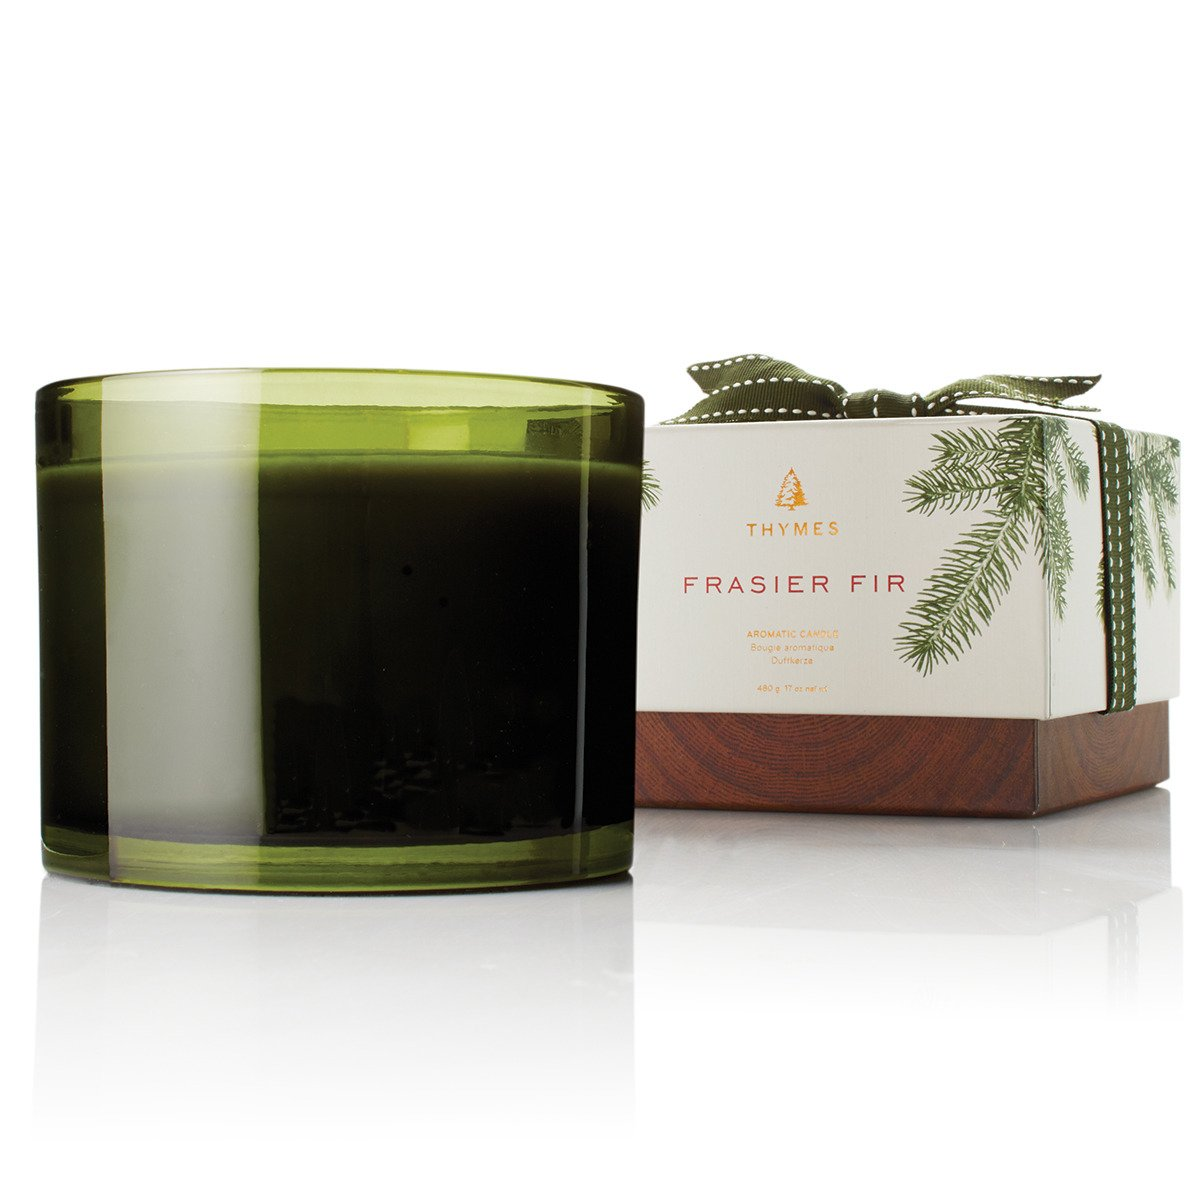 Thymes - Frasier Fir 3-Wick Seasonal Ceramic Wax Candle, 100-Hour Burn Time - 17 Ounces by Thymes